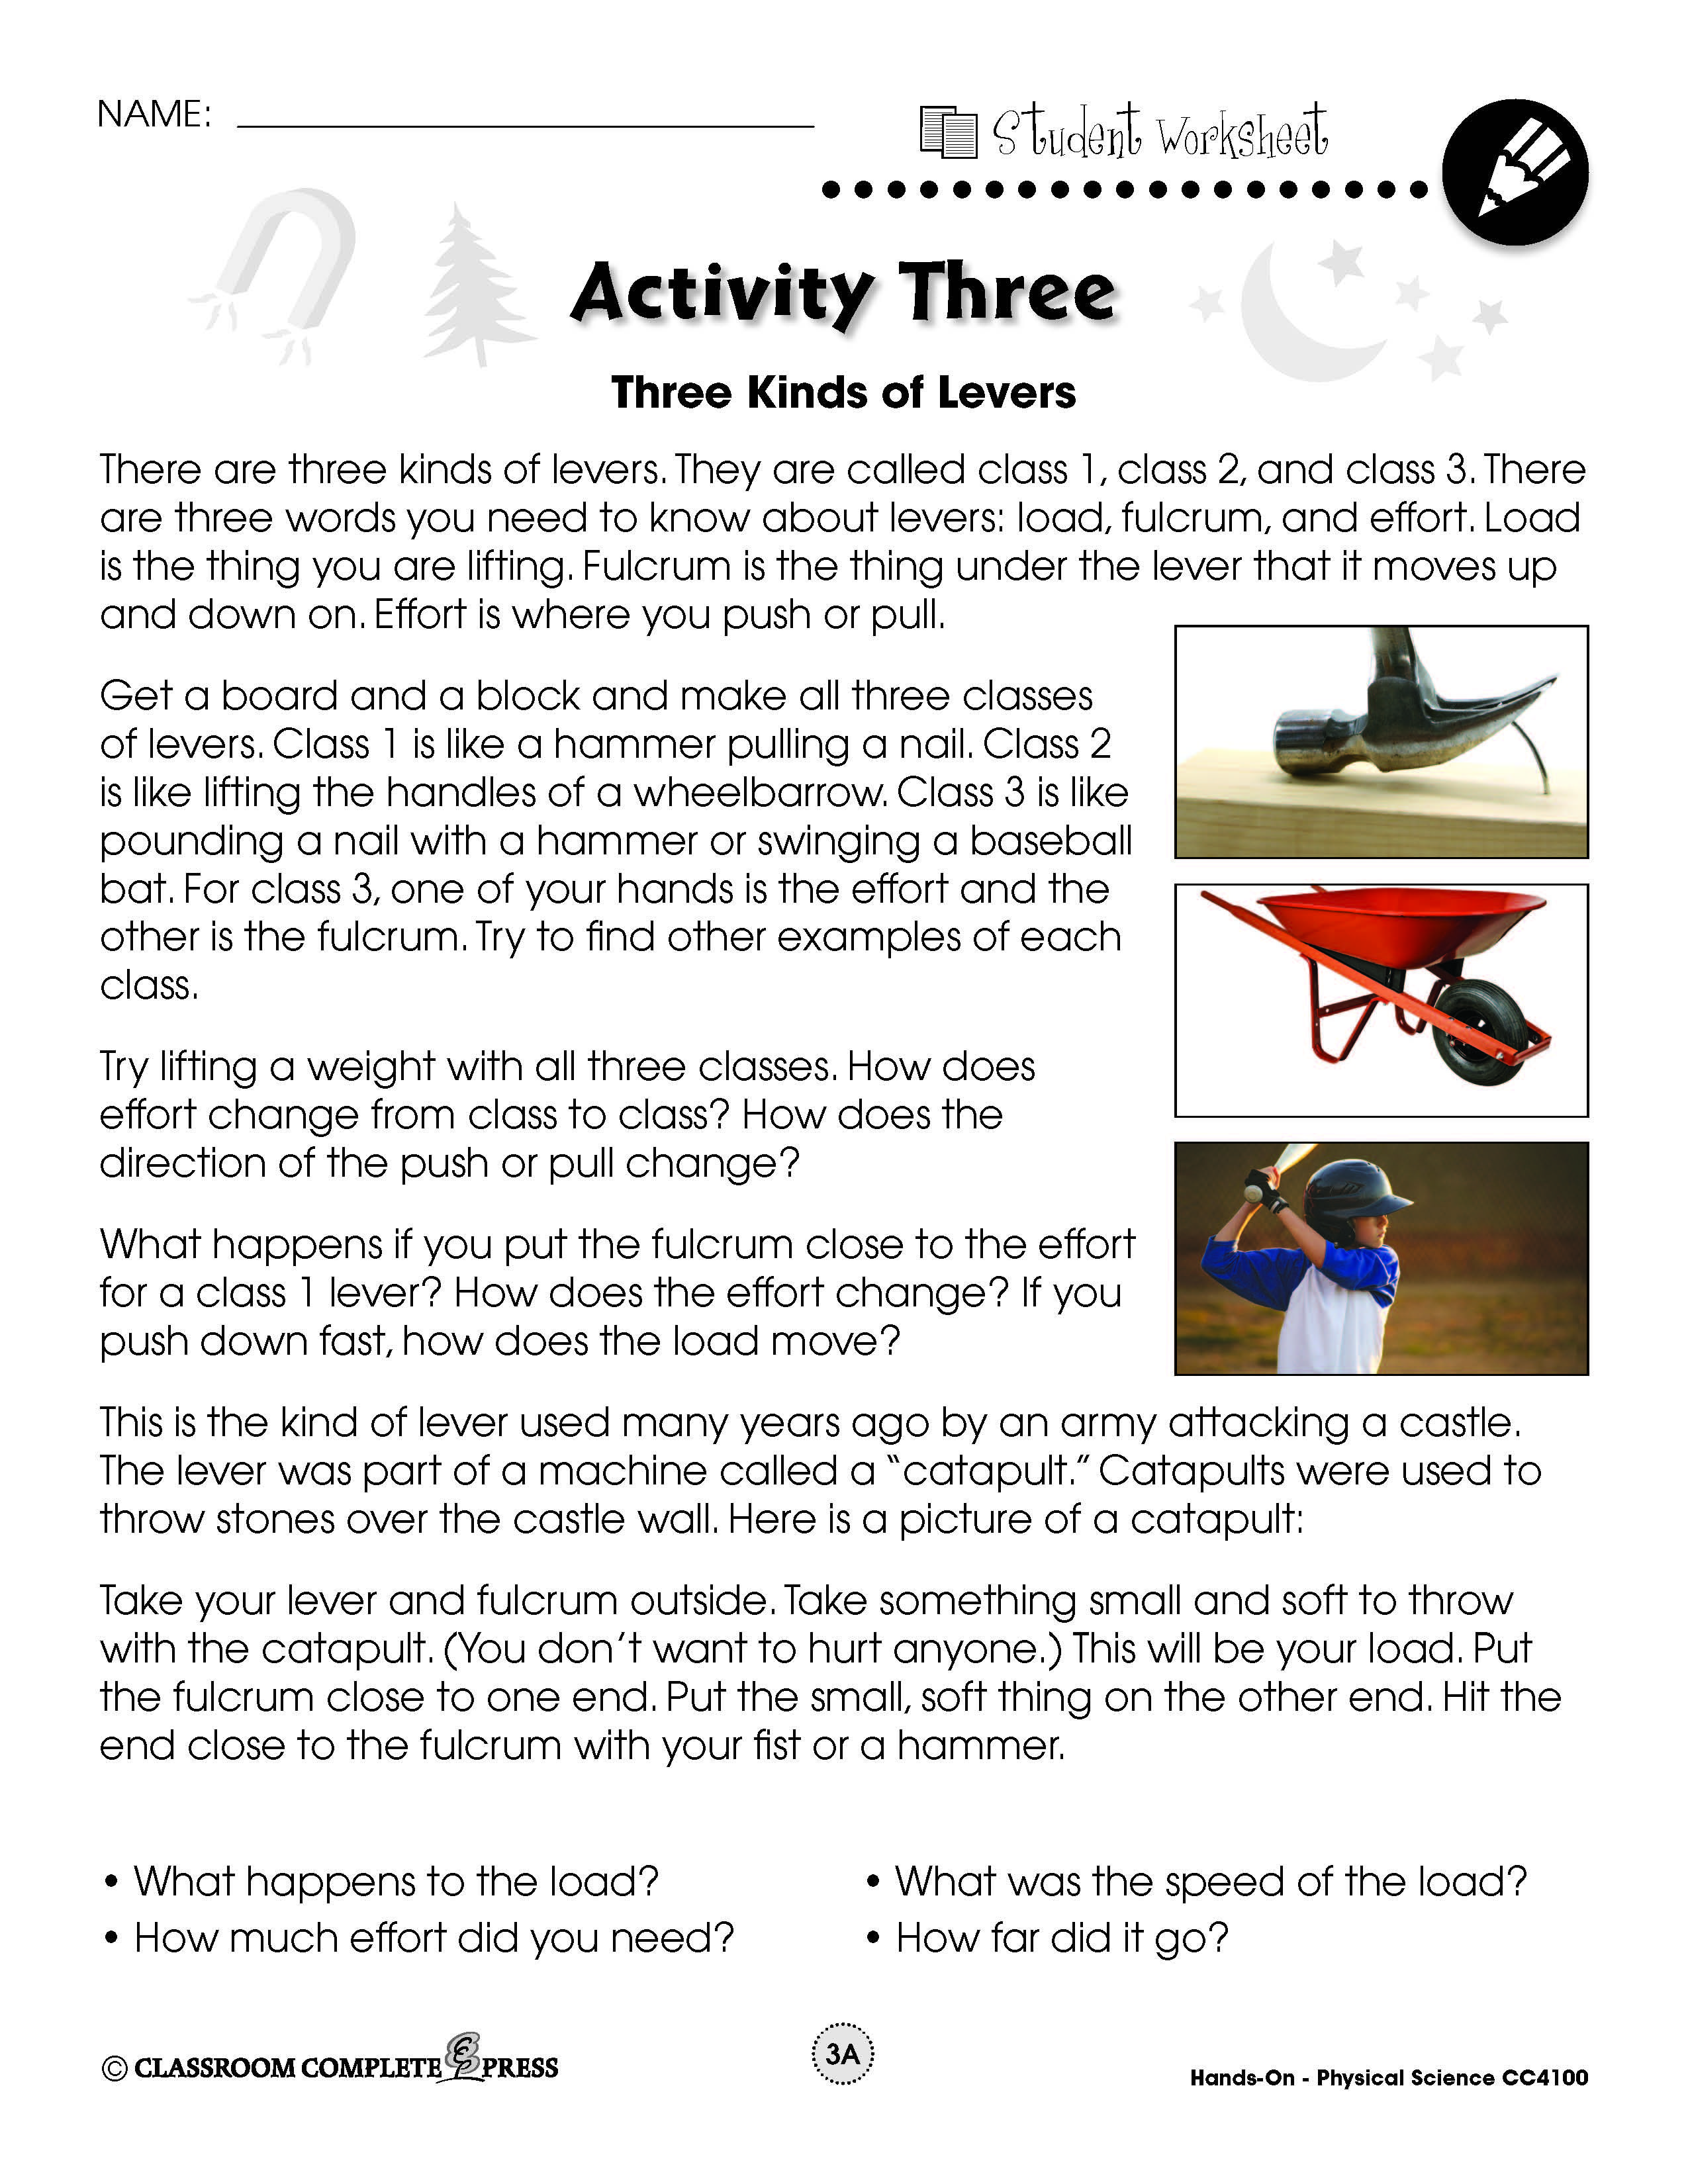 Experiment With Three Kinds Of Levers In This Free